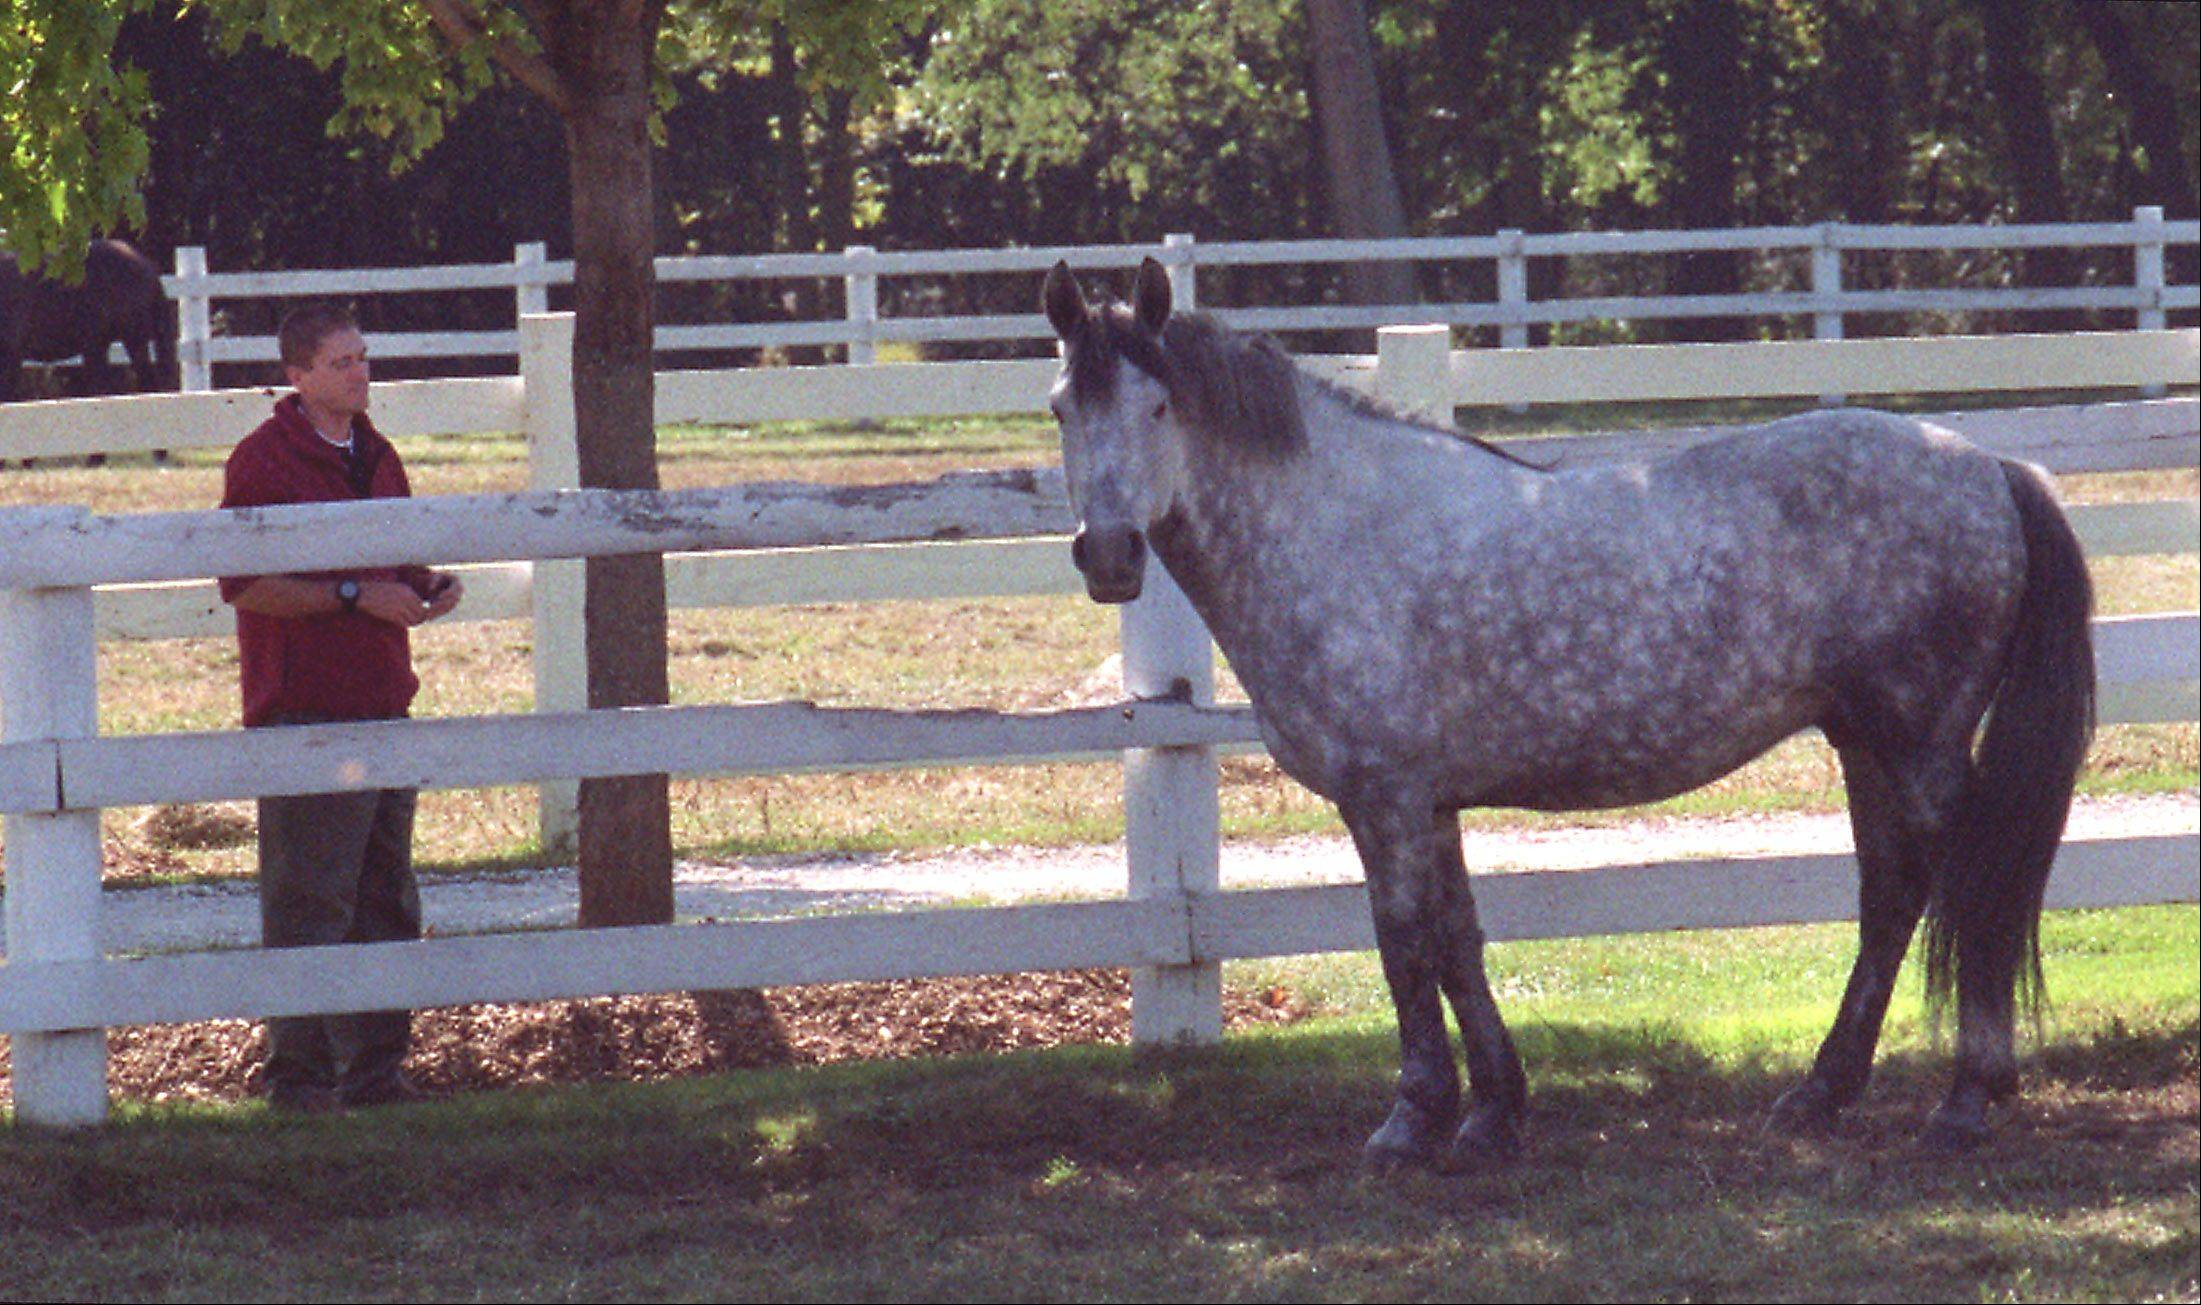 The DuPage County Forest Preserve Commission has accepted a final report on the Danada Equestrian Center that found the need for some improvements, but no mistreatment of horses.